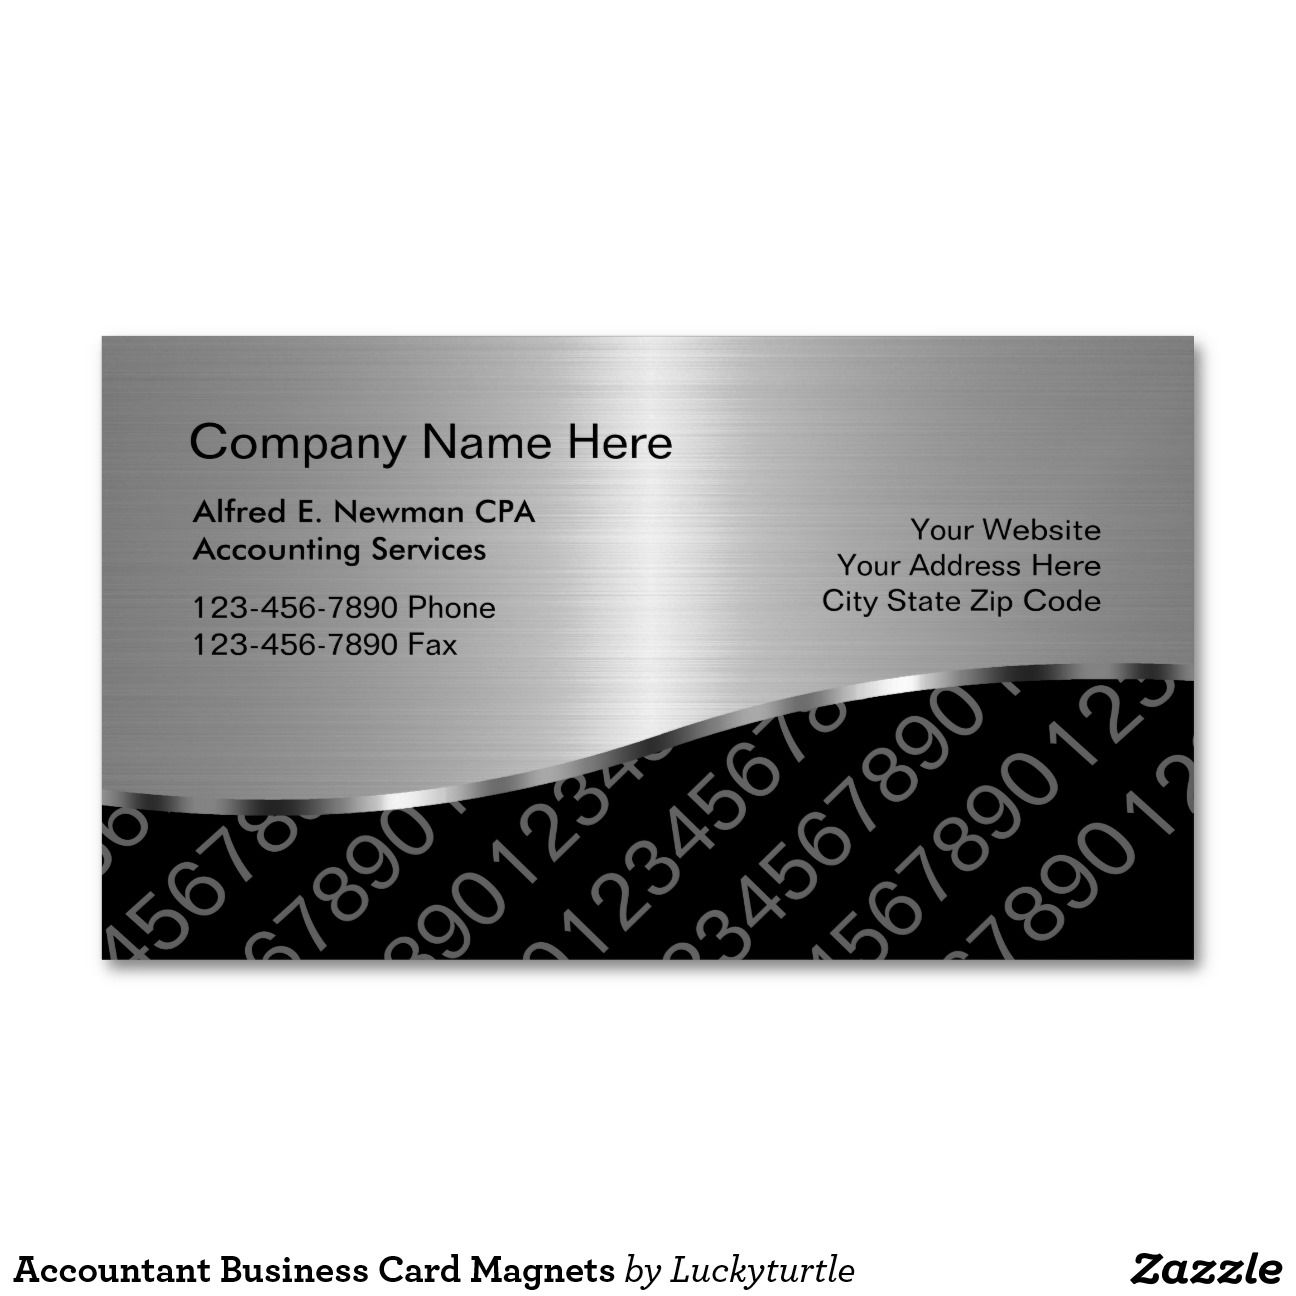 Accountant Business Card Magnets Magnetic Business Cards | Branding ...